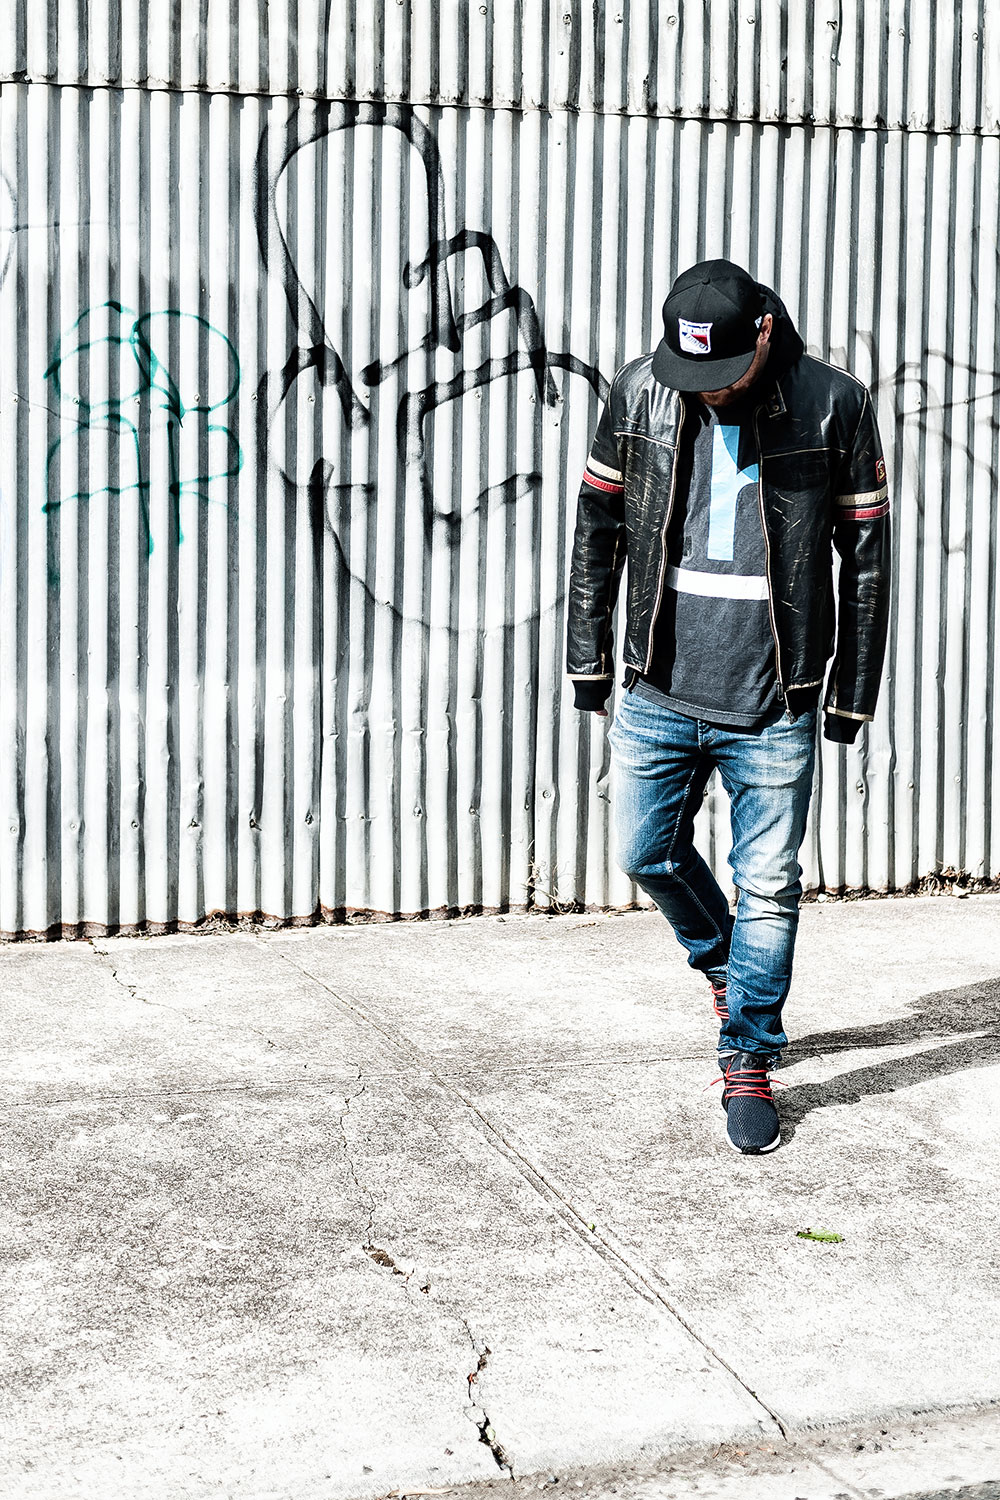 Energie 'Rod Knockers' Leather Biker Jacket / Denham The Jeanmaker Razor NISS Stone Wash Selvedge Jeans / JD Sports X Adidas Originals NMD XR1 Black Sneakers by Tom Cunningham